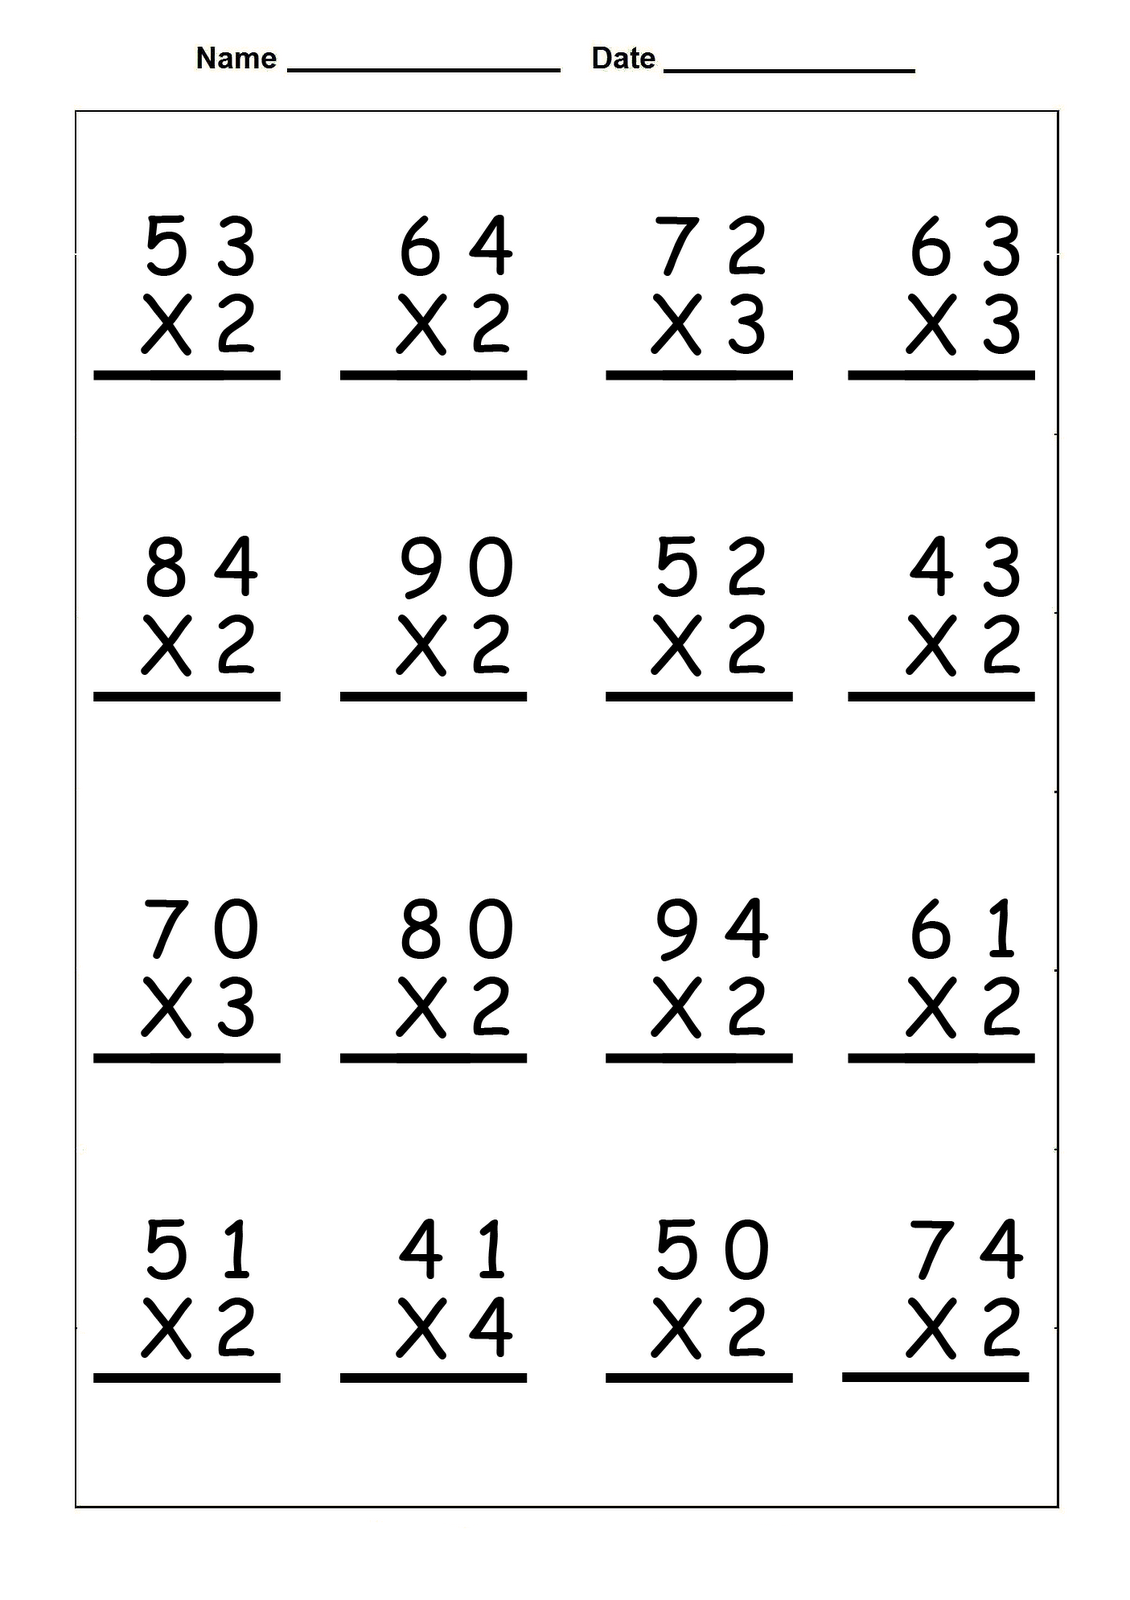 40 Stunning 4th Grade Math Worksheets For You With Images